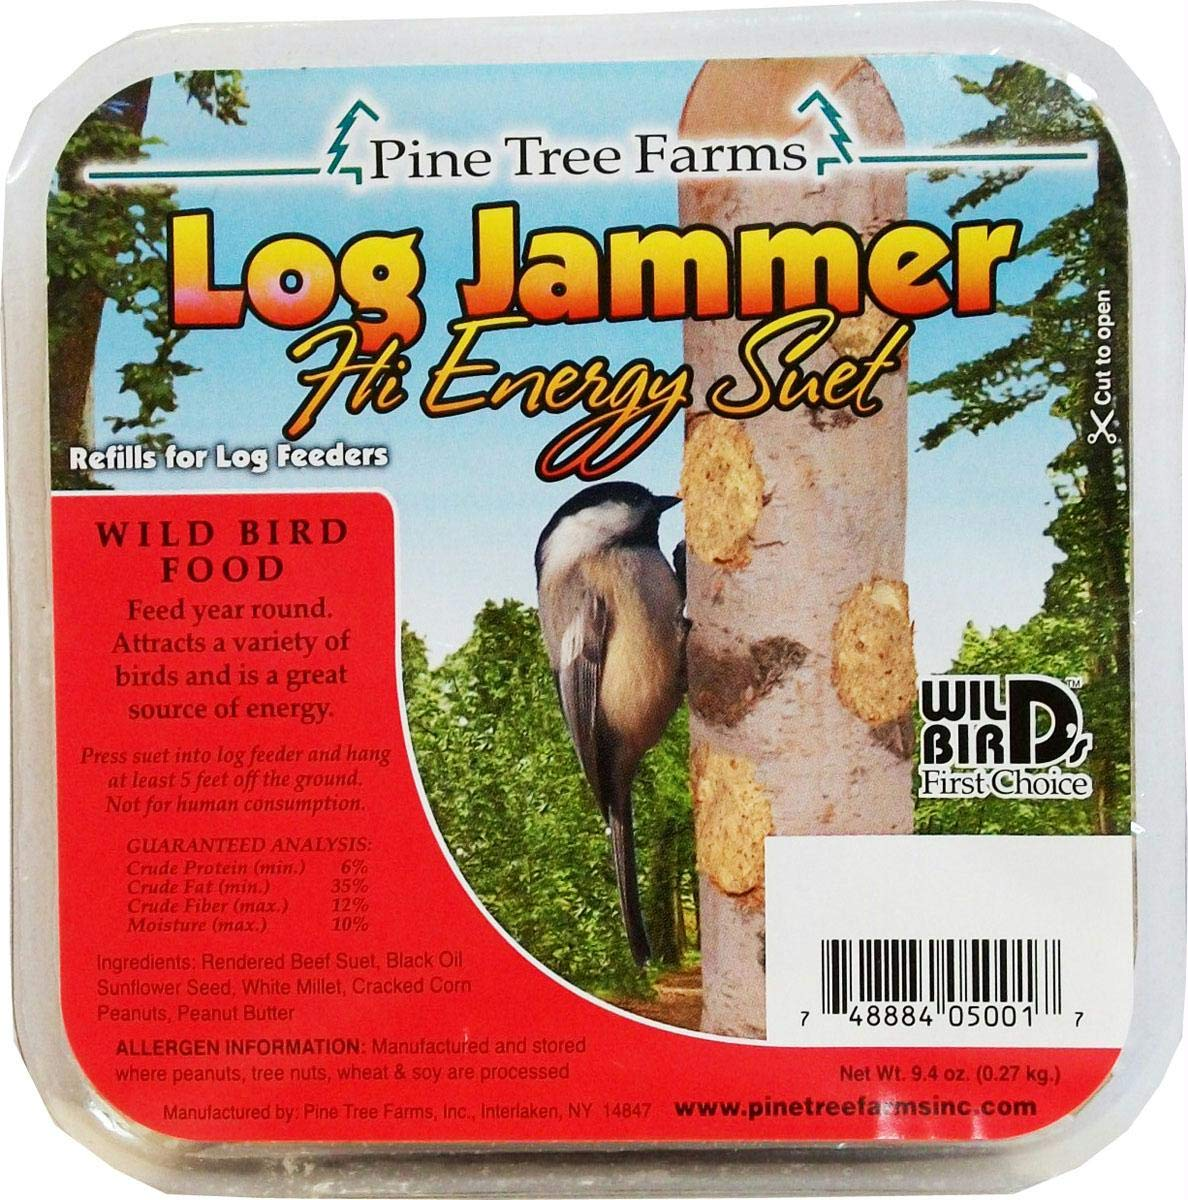 Pine Tree Farms 12 Pack of Log Jammers Hi Energy Suet 3 Refills (36 Plugs Total) 3 by Pine Tree Farms